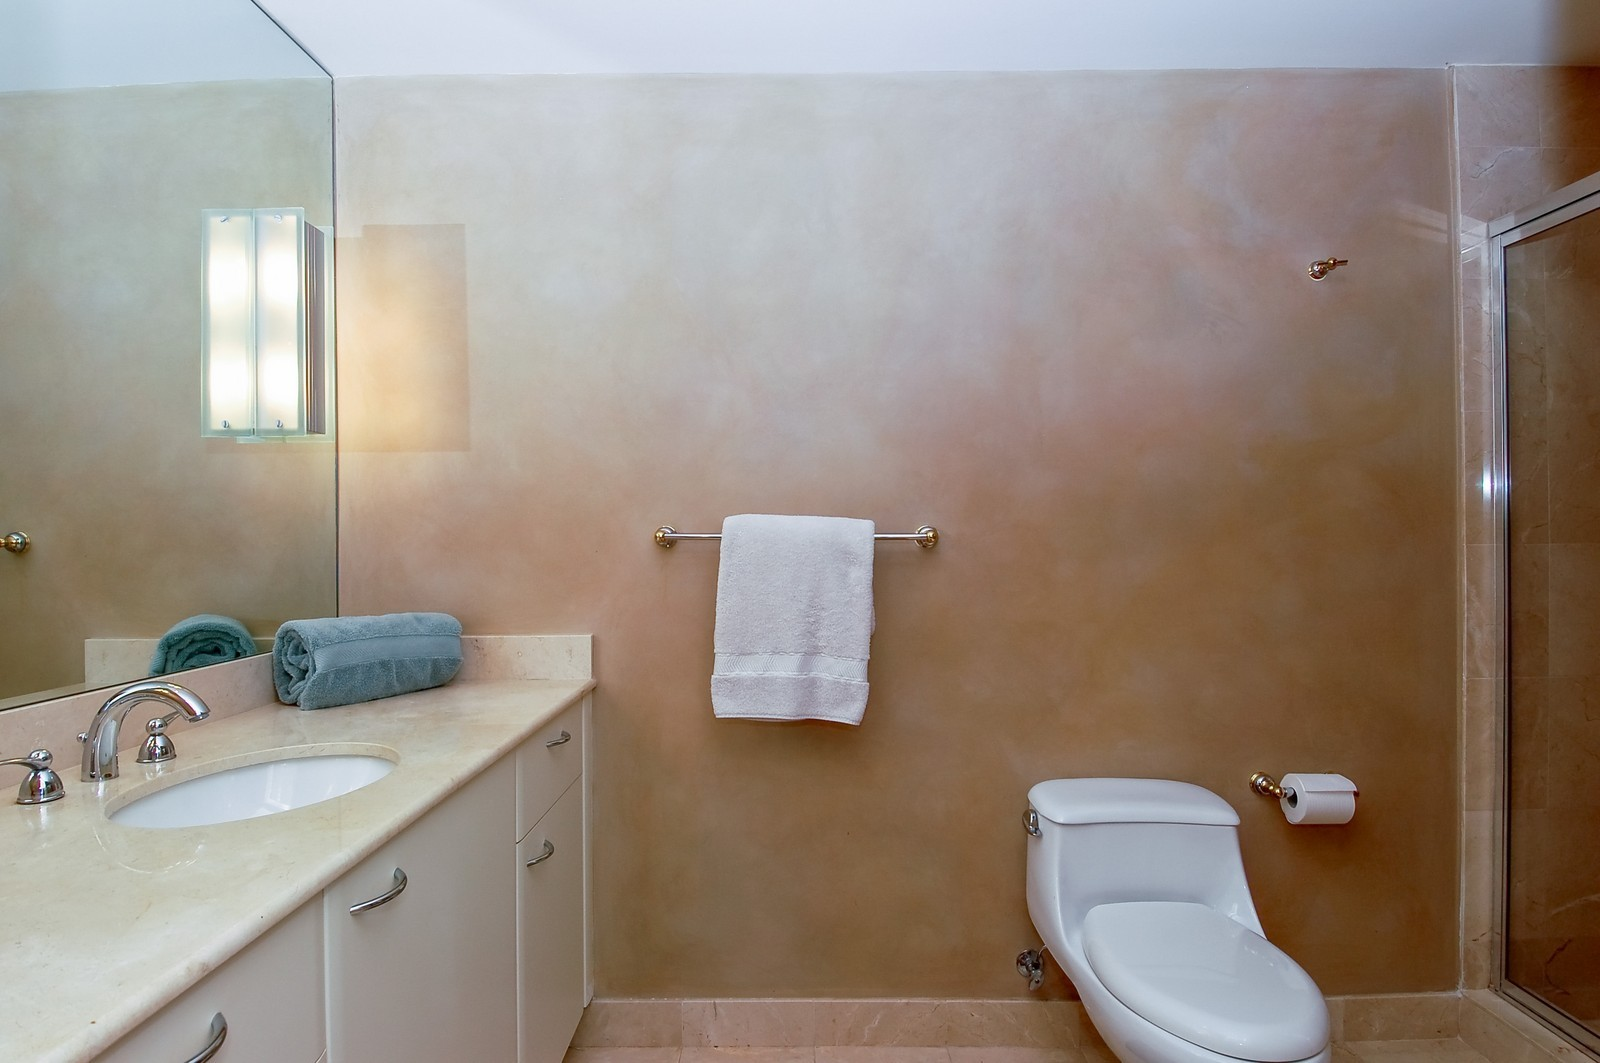 Real Estate Photography - 1600 S Ocean Blvd, Apt 802, Pompano Beach, FL, 33062 - 4th Bathroom